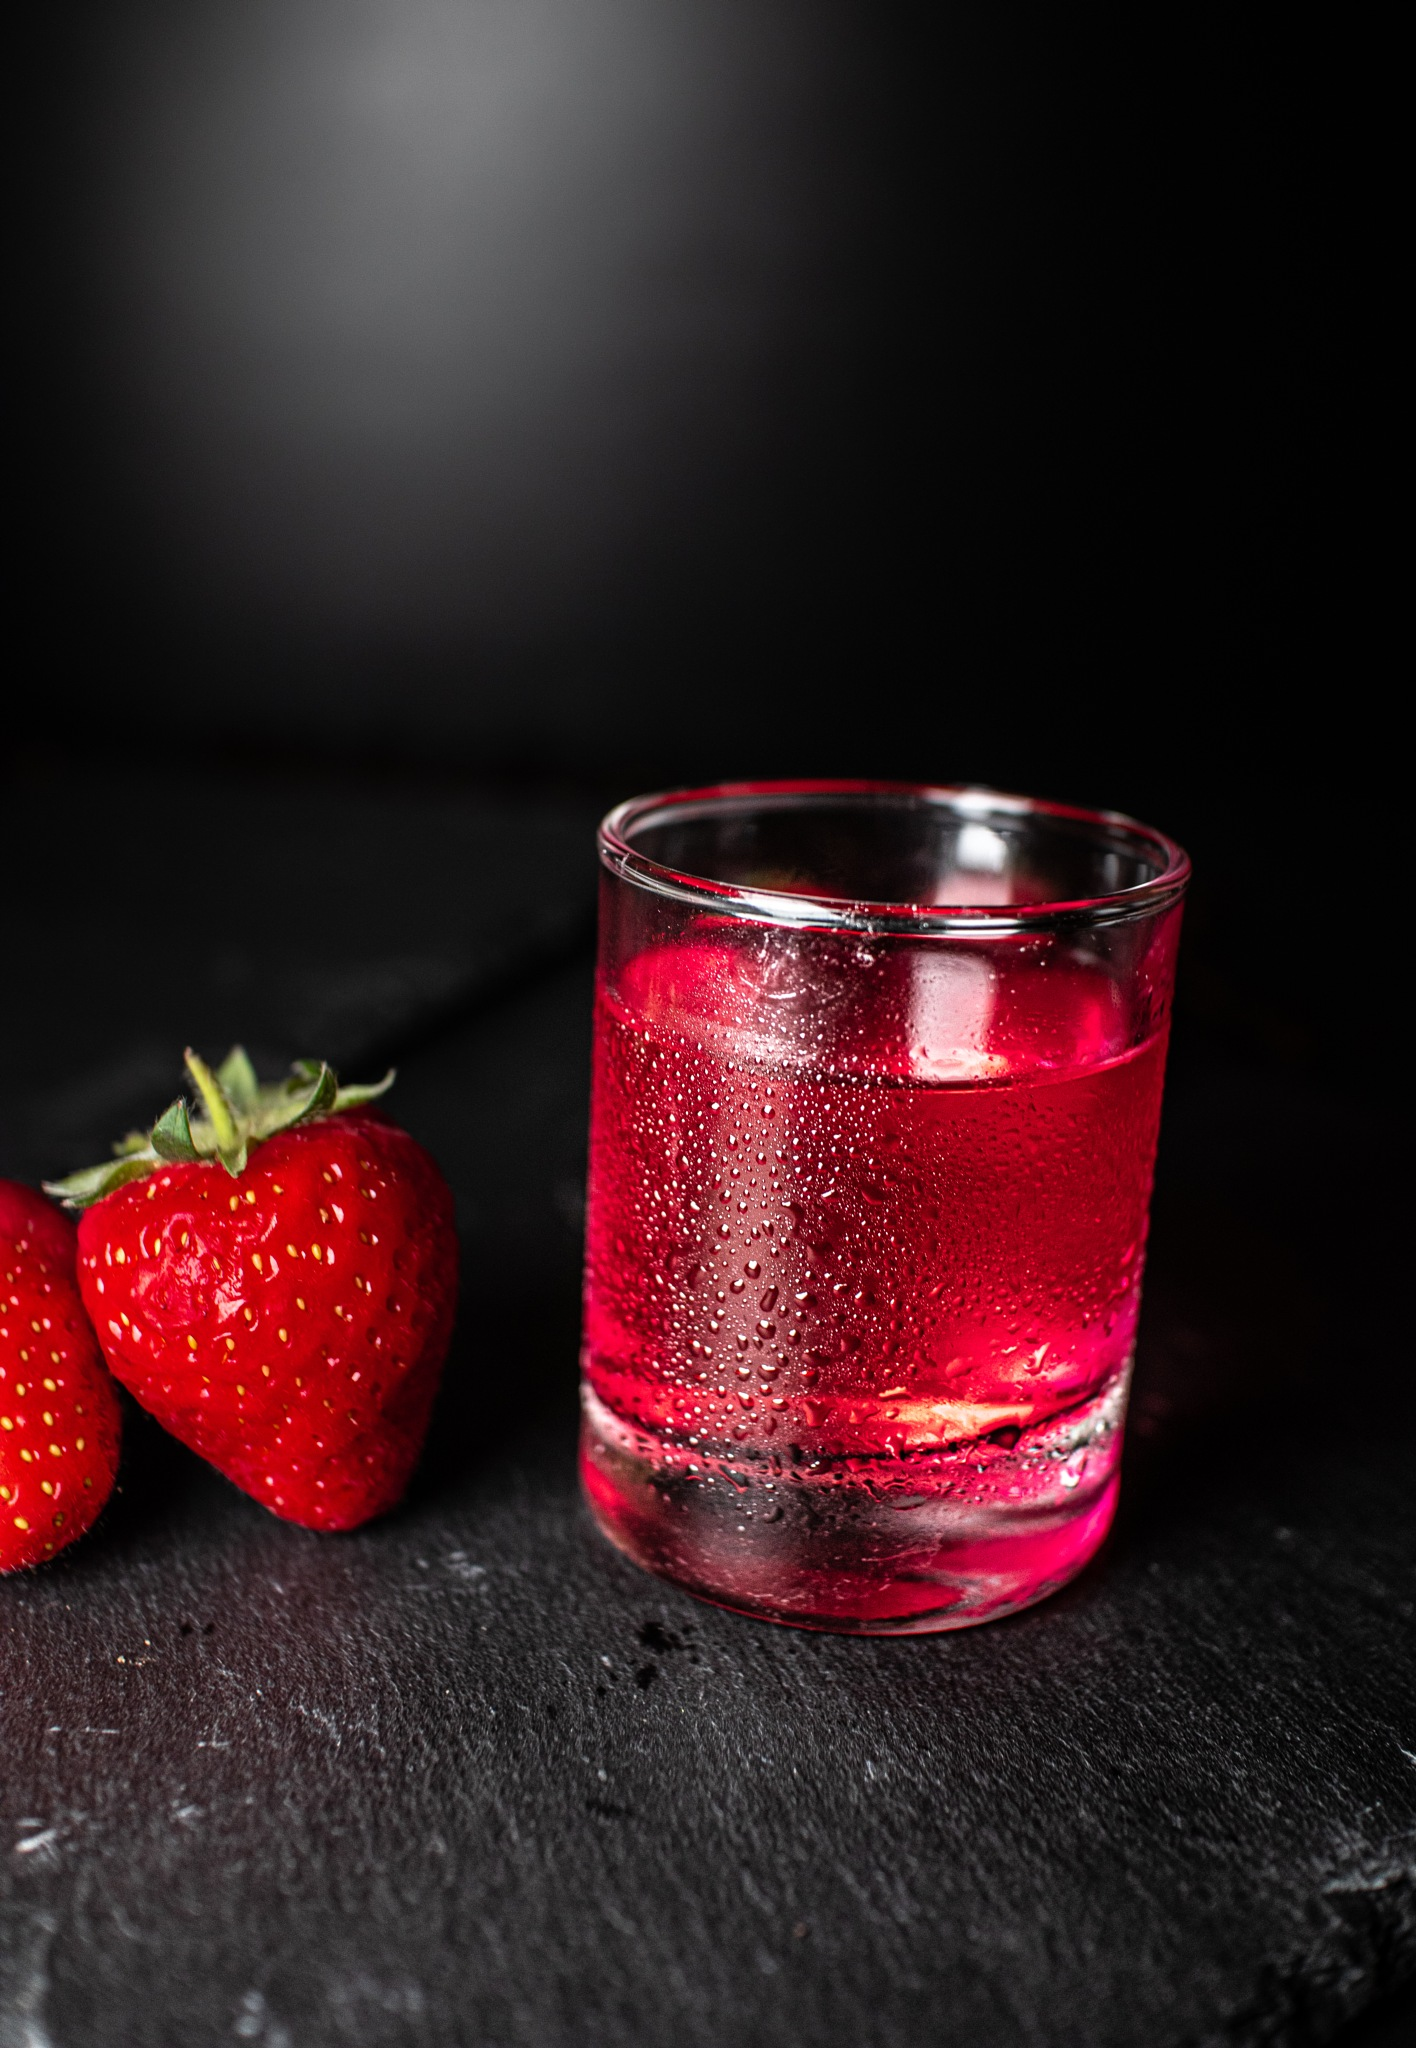 shot product / drink photography by Cameron Glenwright